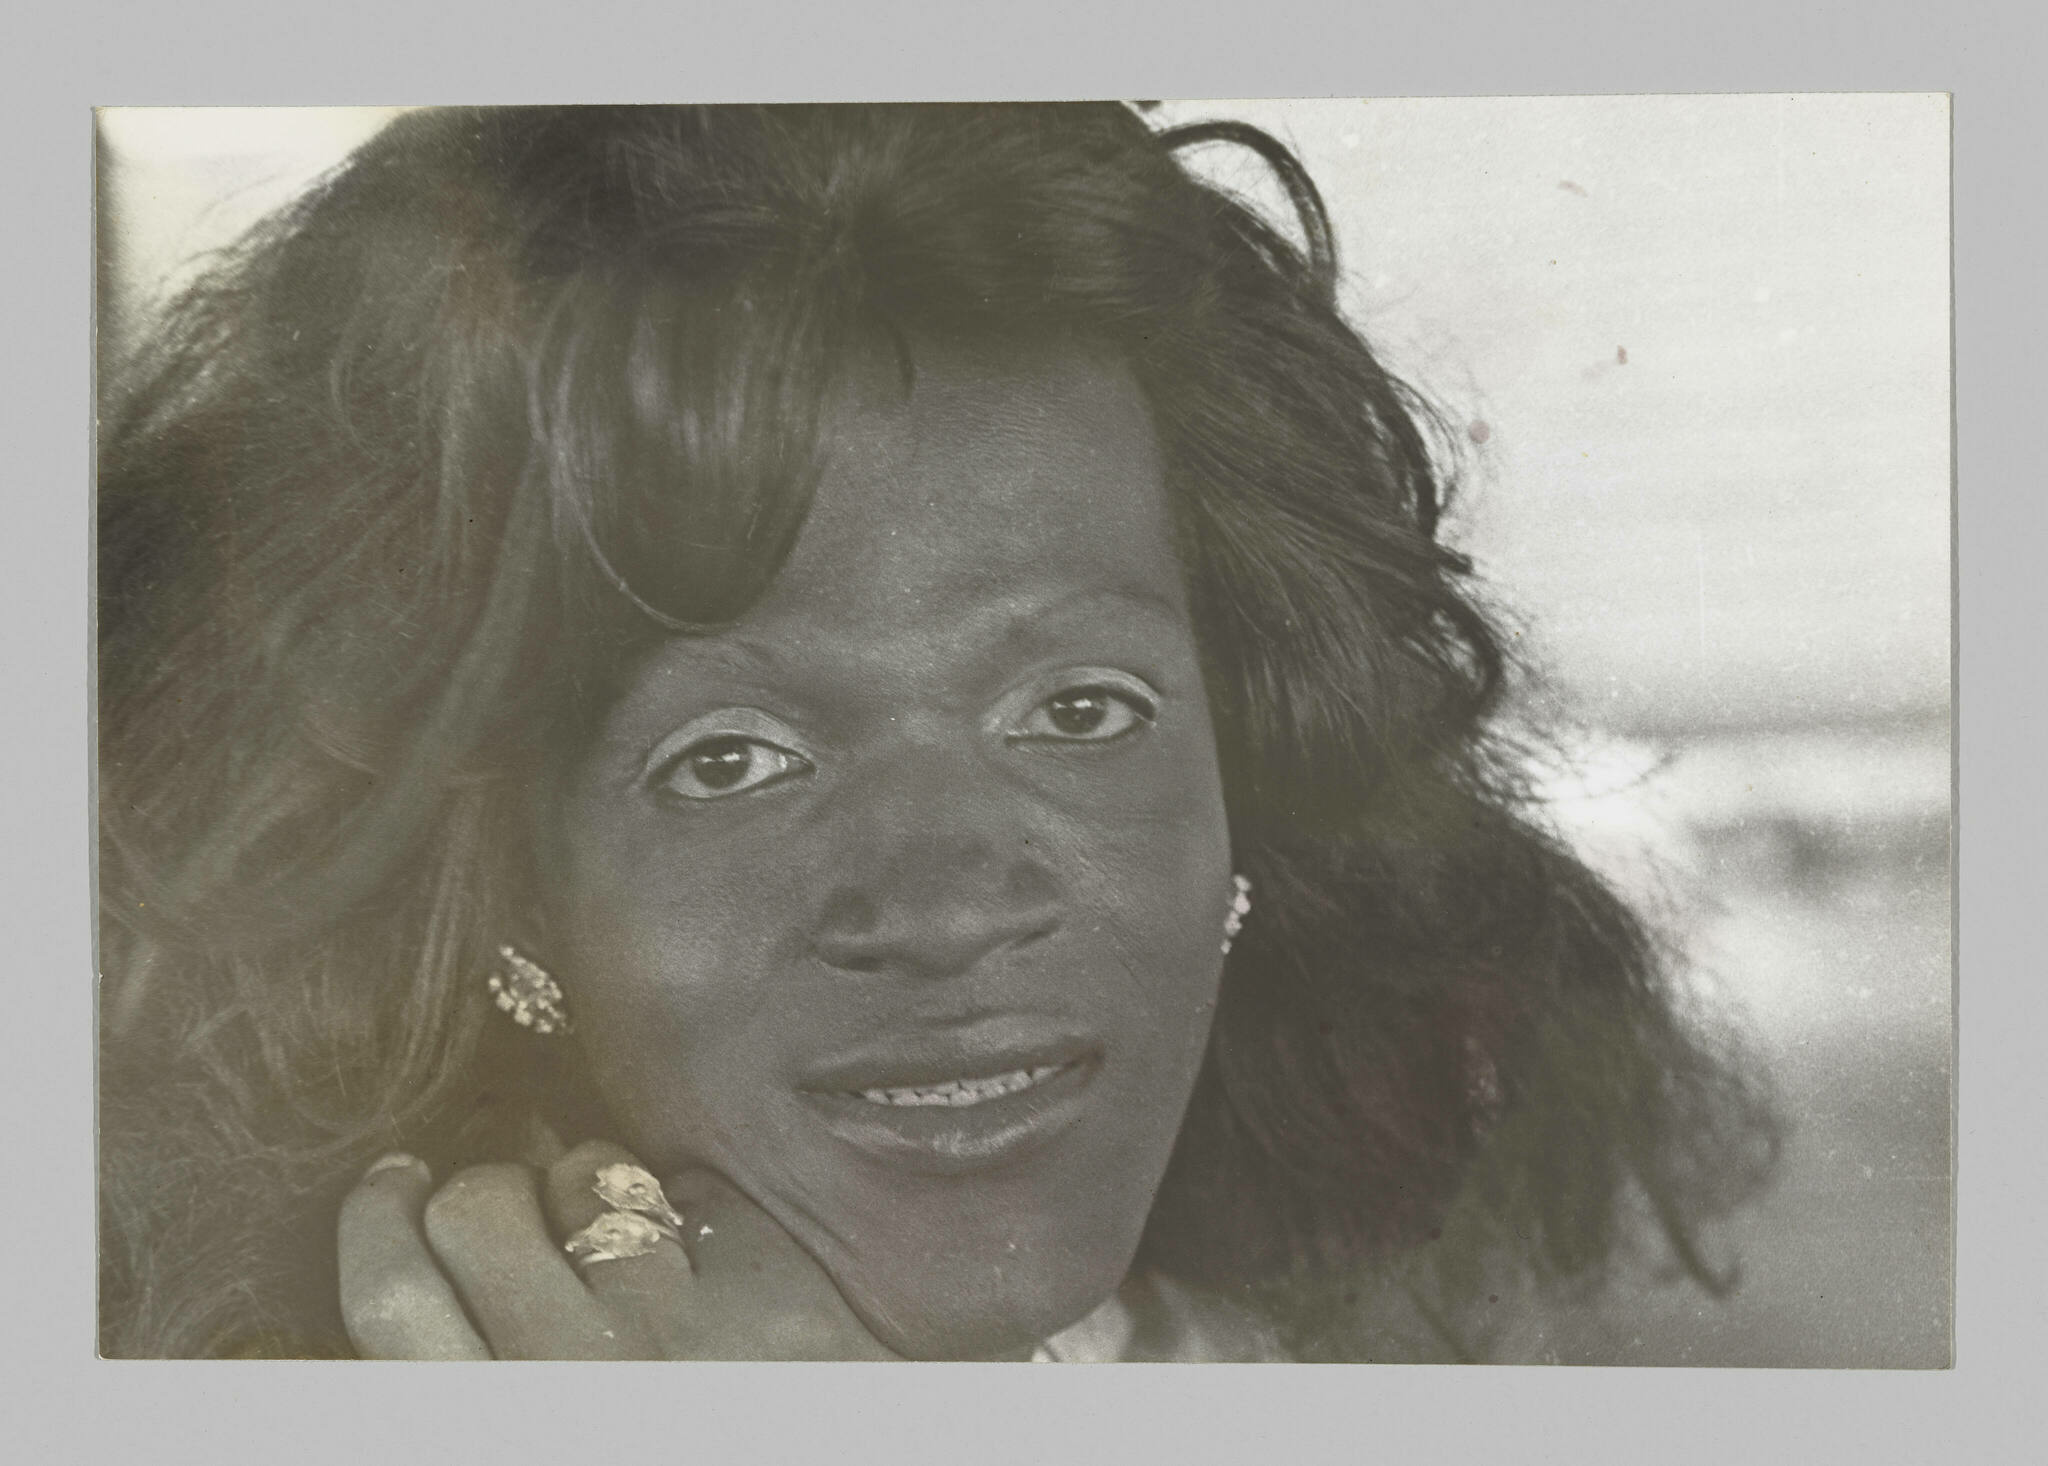 Closely cropped portrait of a Black trans person gazing into the camera, with shoulder-length hair and glittering jewelry